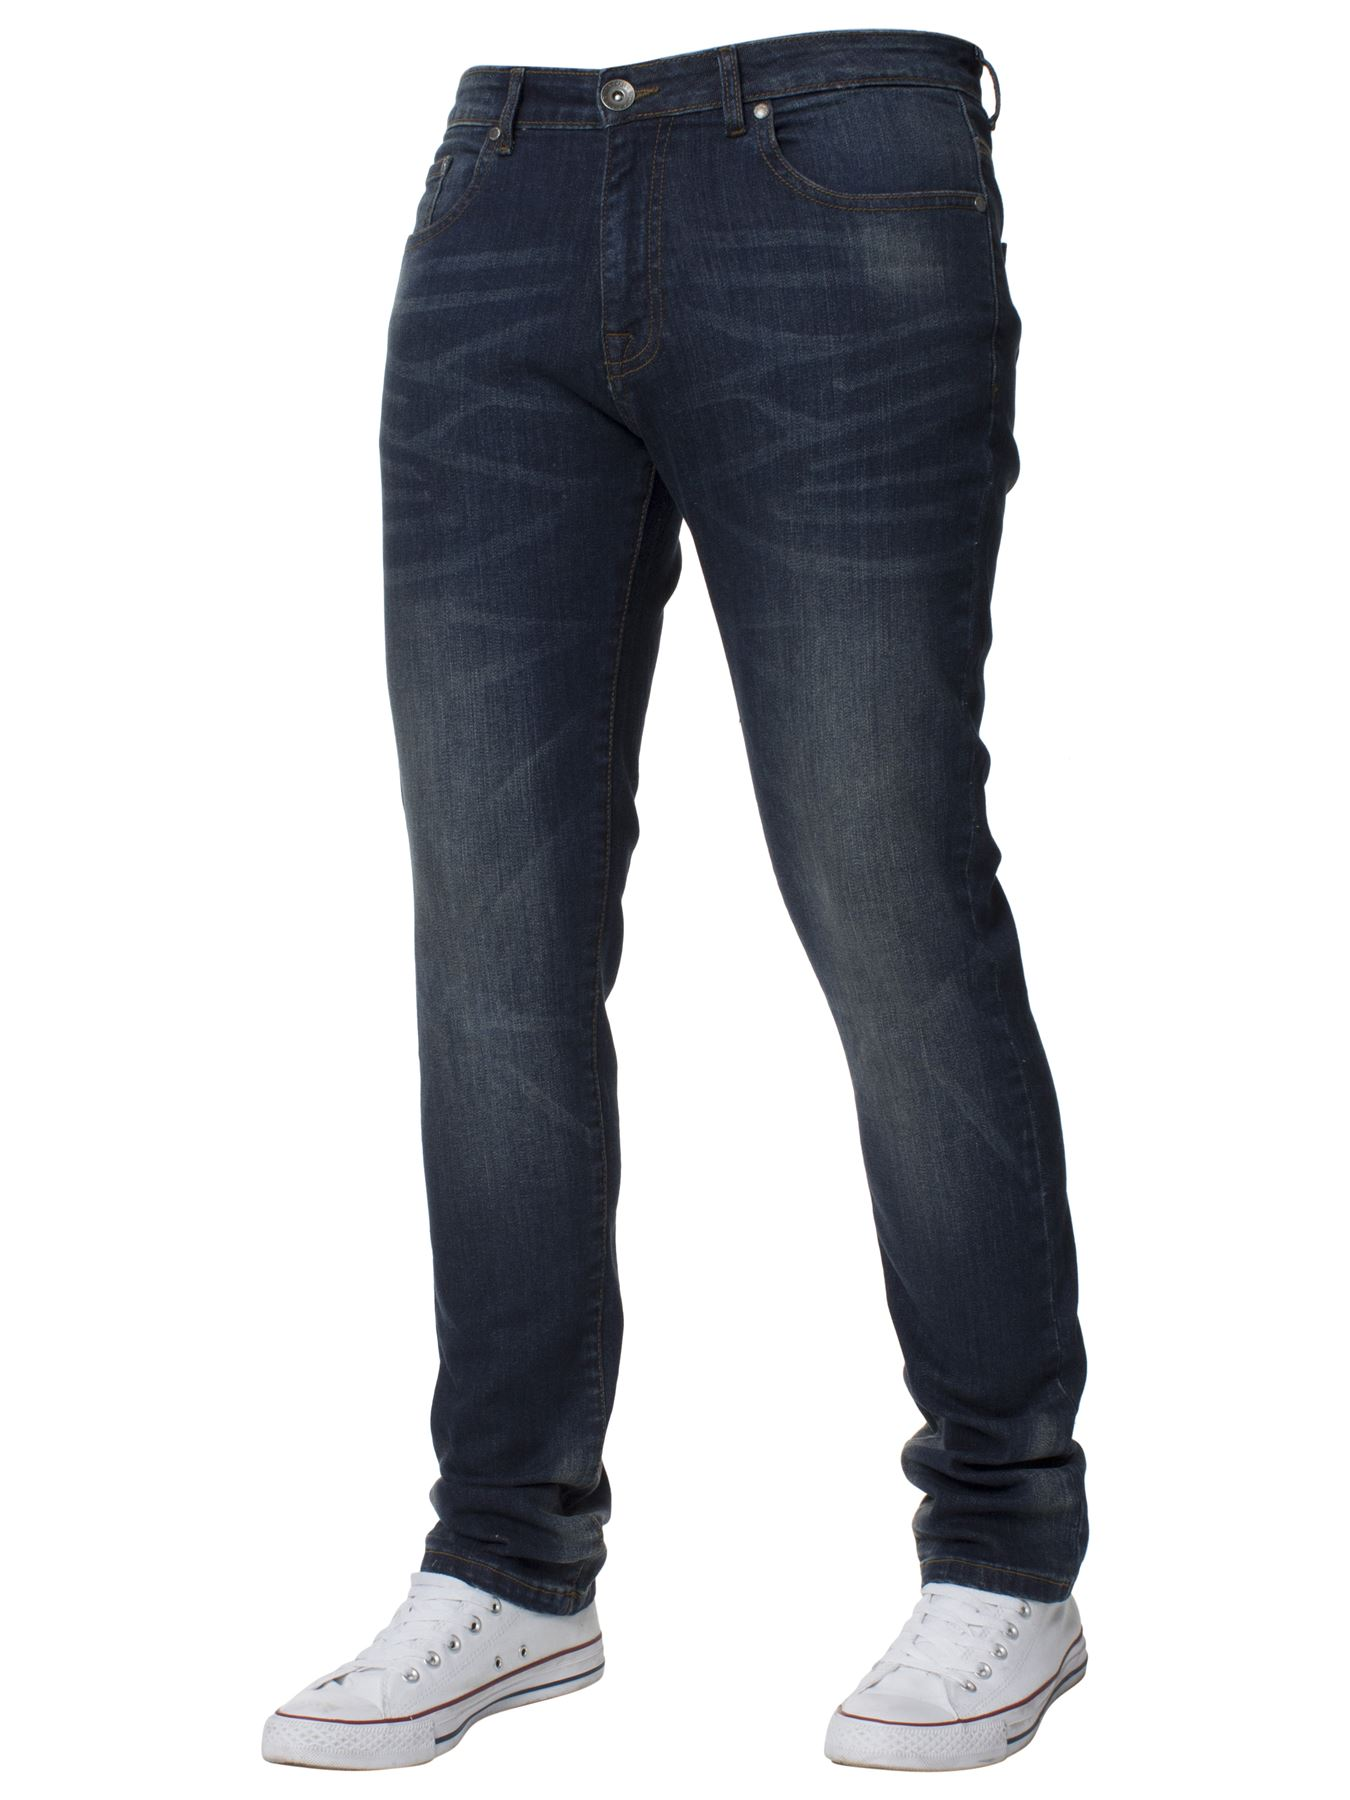 Mens-Skinny-Stretch-Jeans-Slim-Fit-Flex-Denim-Trousers-Pants-King-Sizes-by-Kruze thumbnail 15